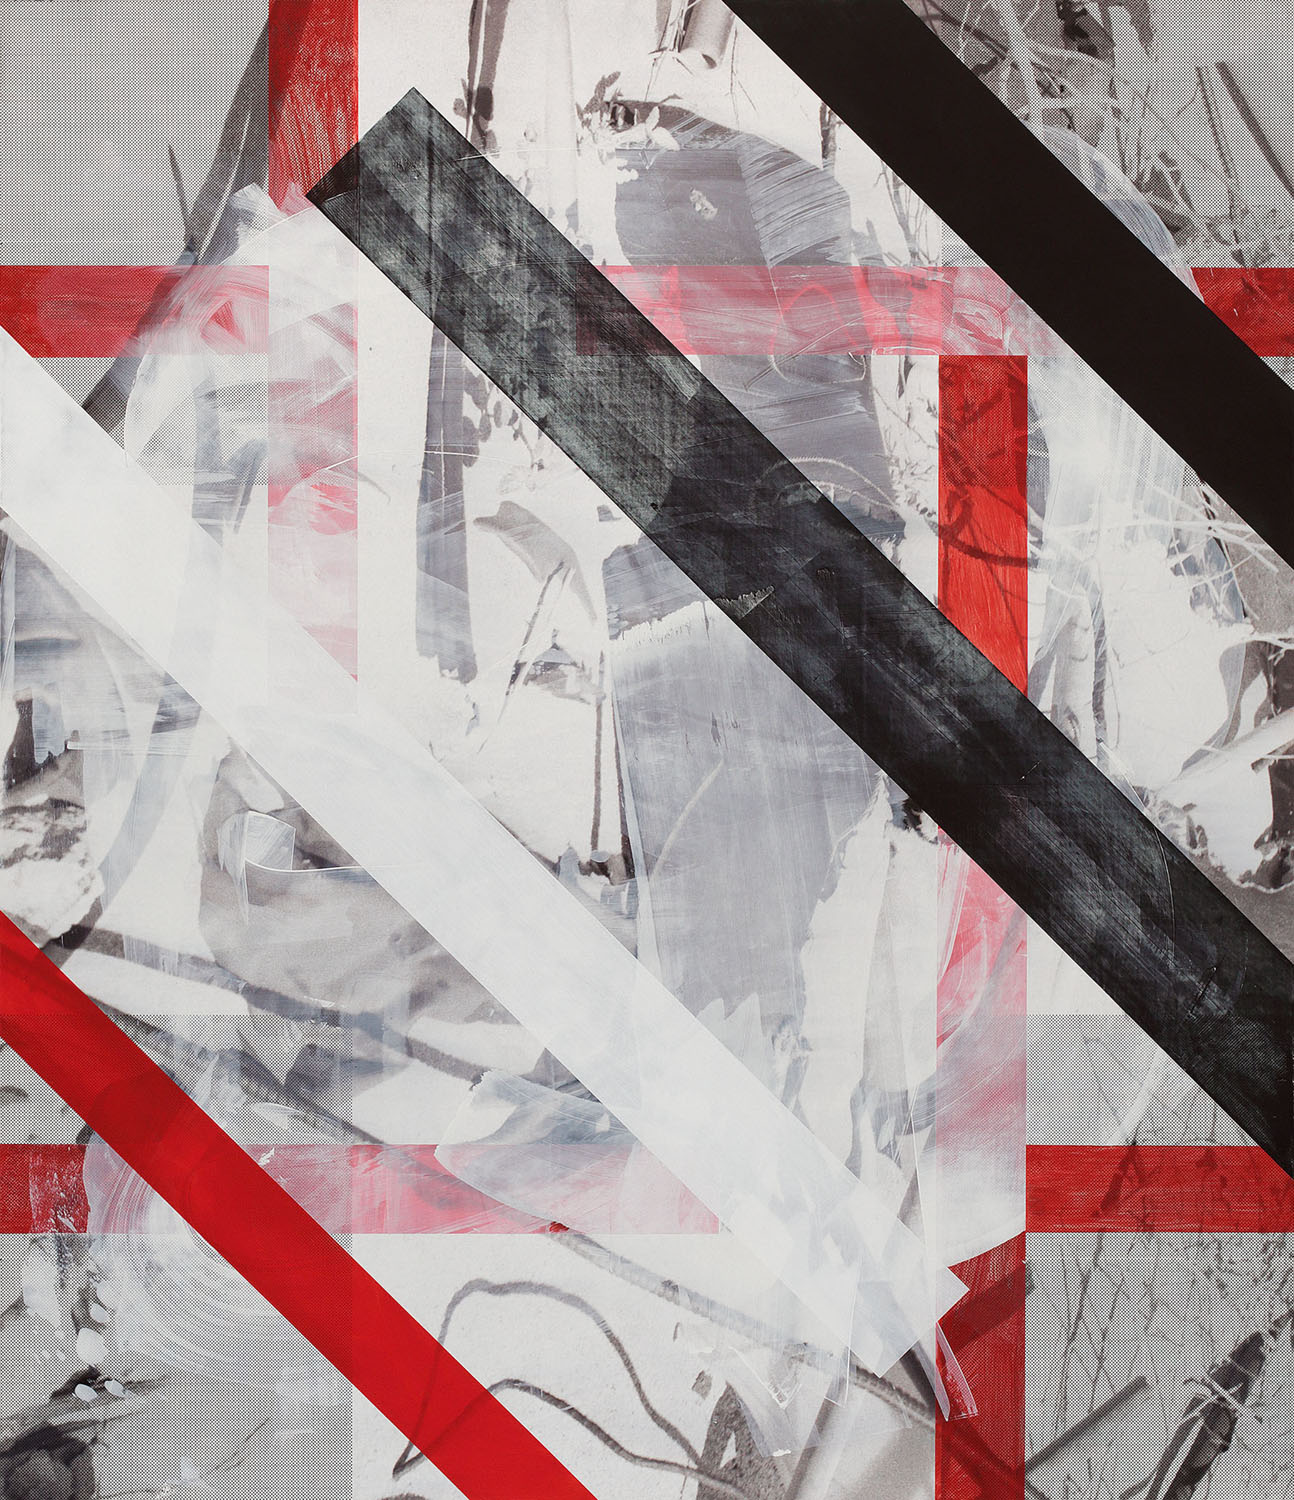 Shame, 2014  Acrylic, oil and UV cured ink on canvas over panel  84 x 72 inches  213.36 x 182.88 cm